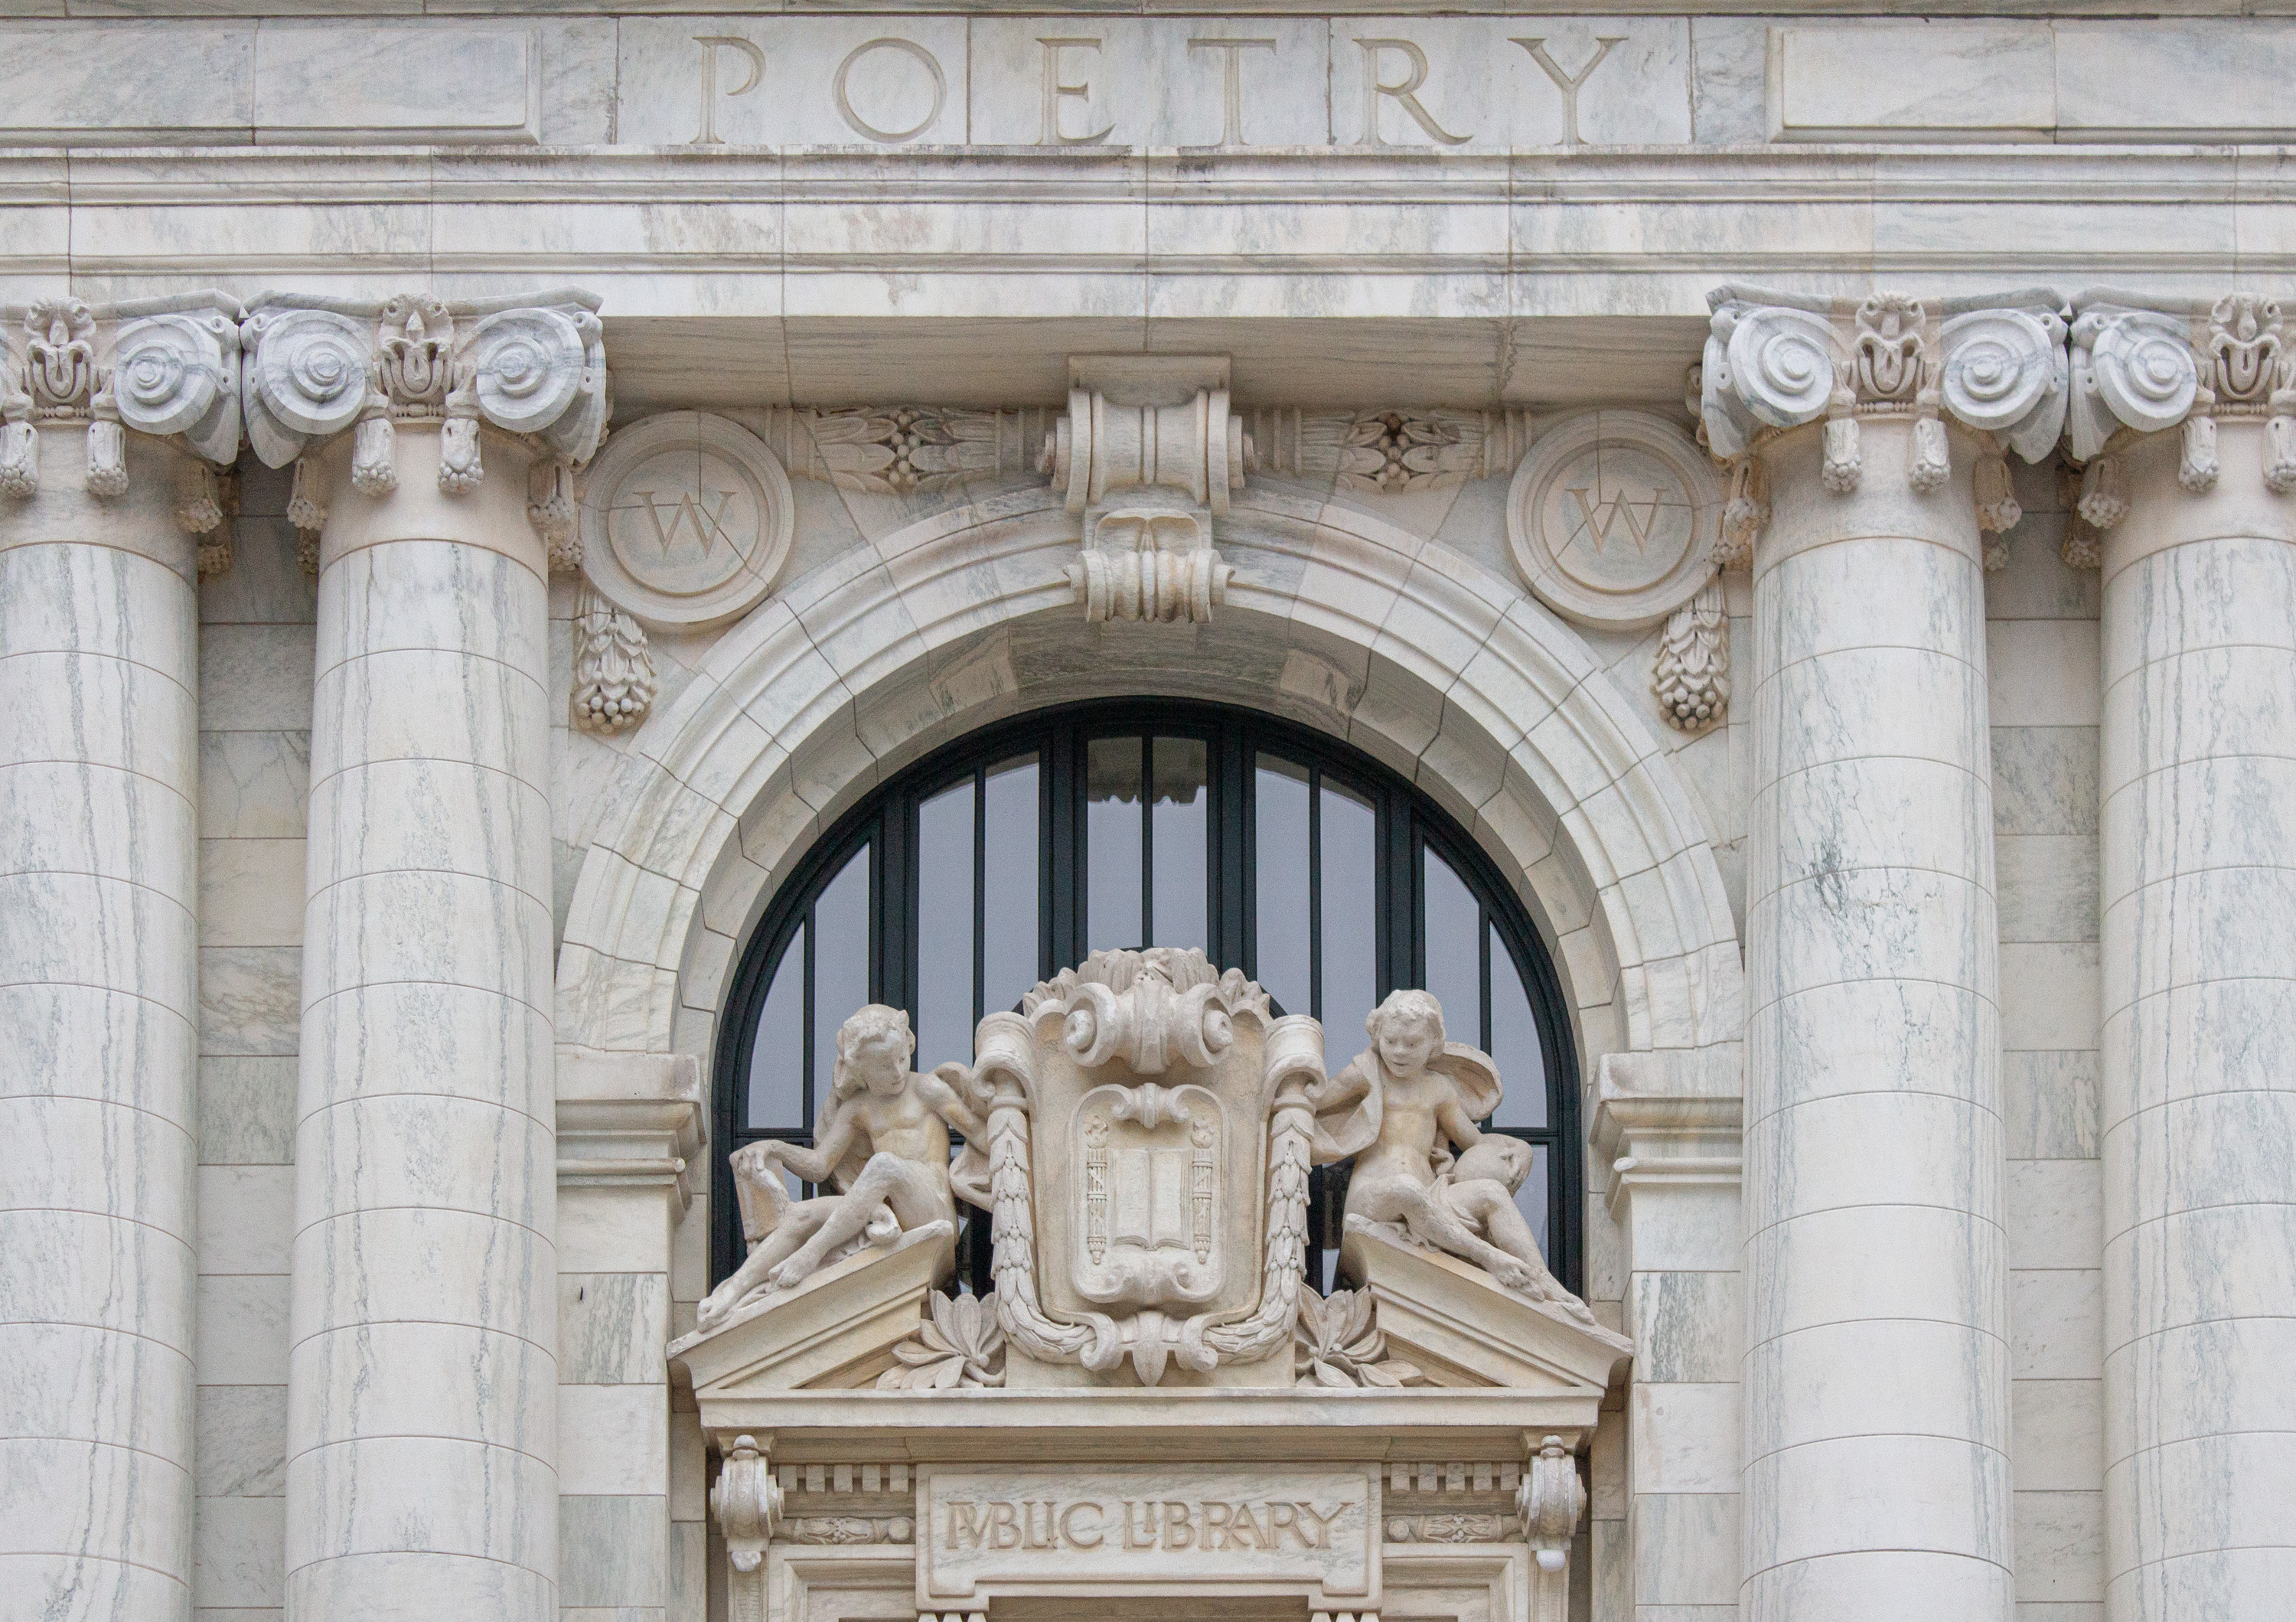 Apple Carnegie Library Entrance Detail